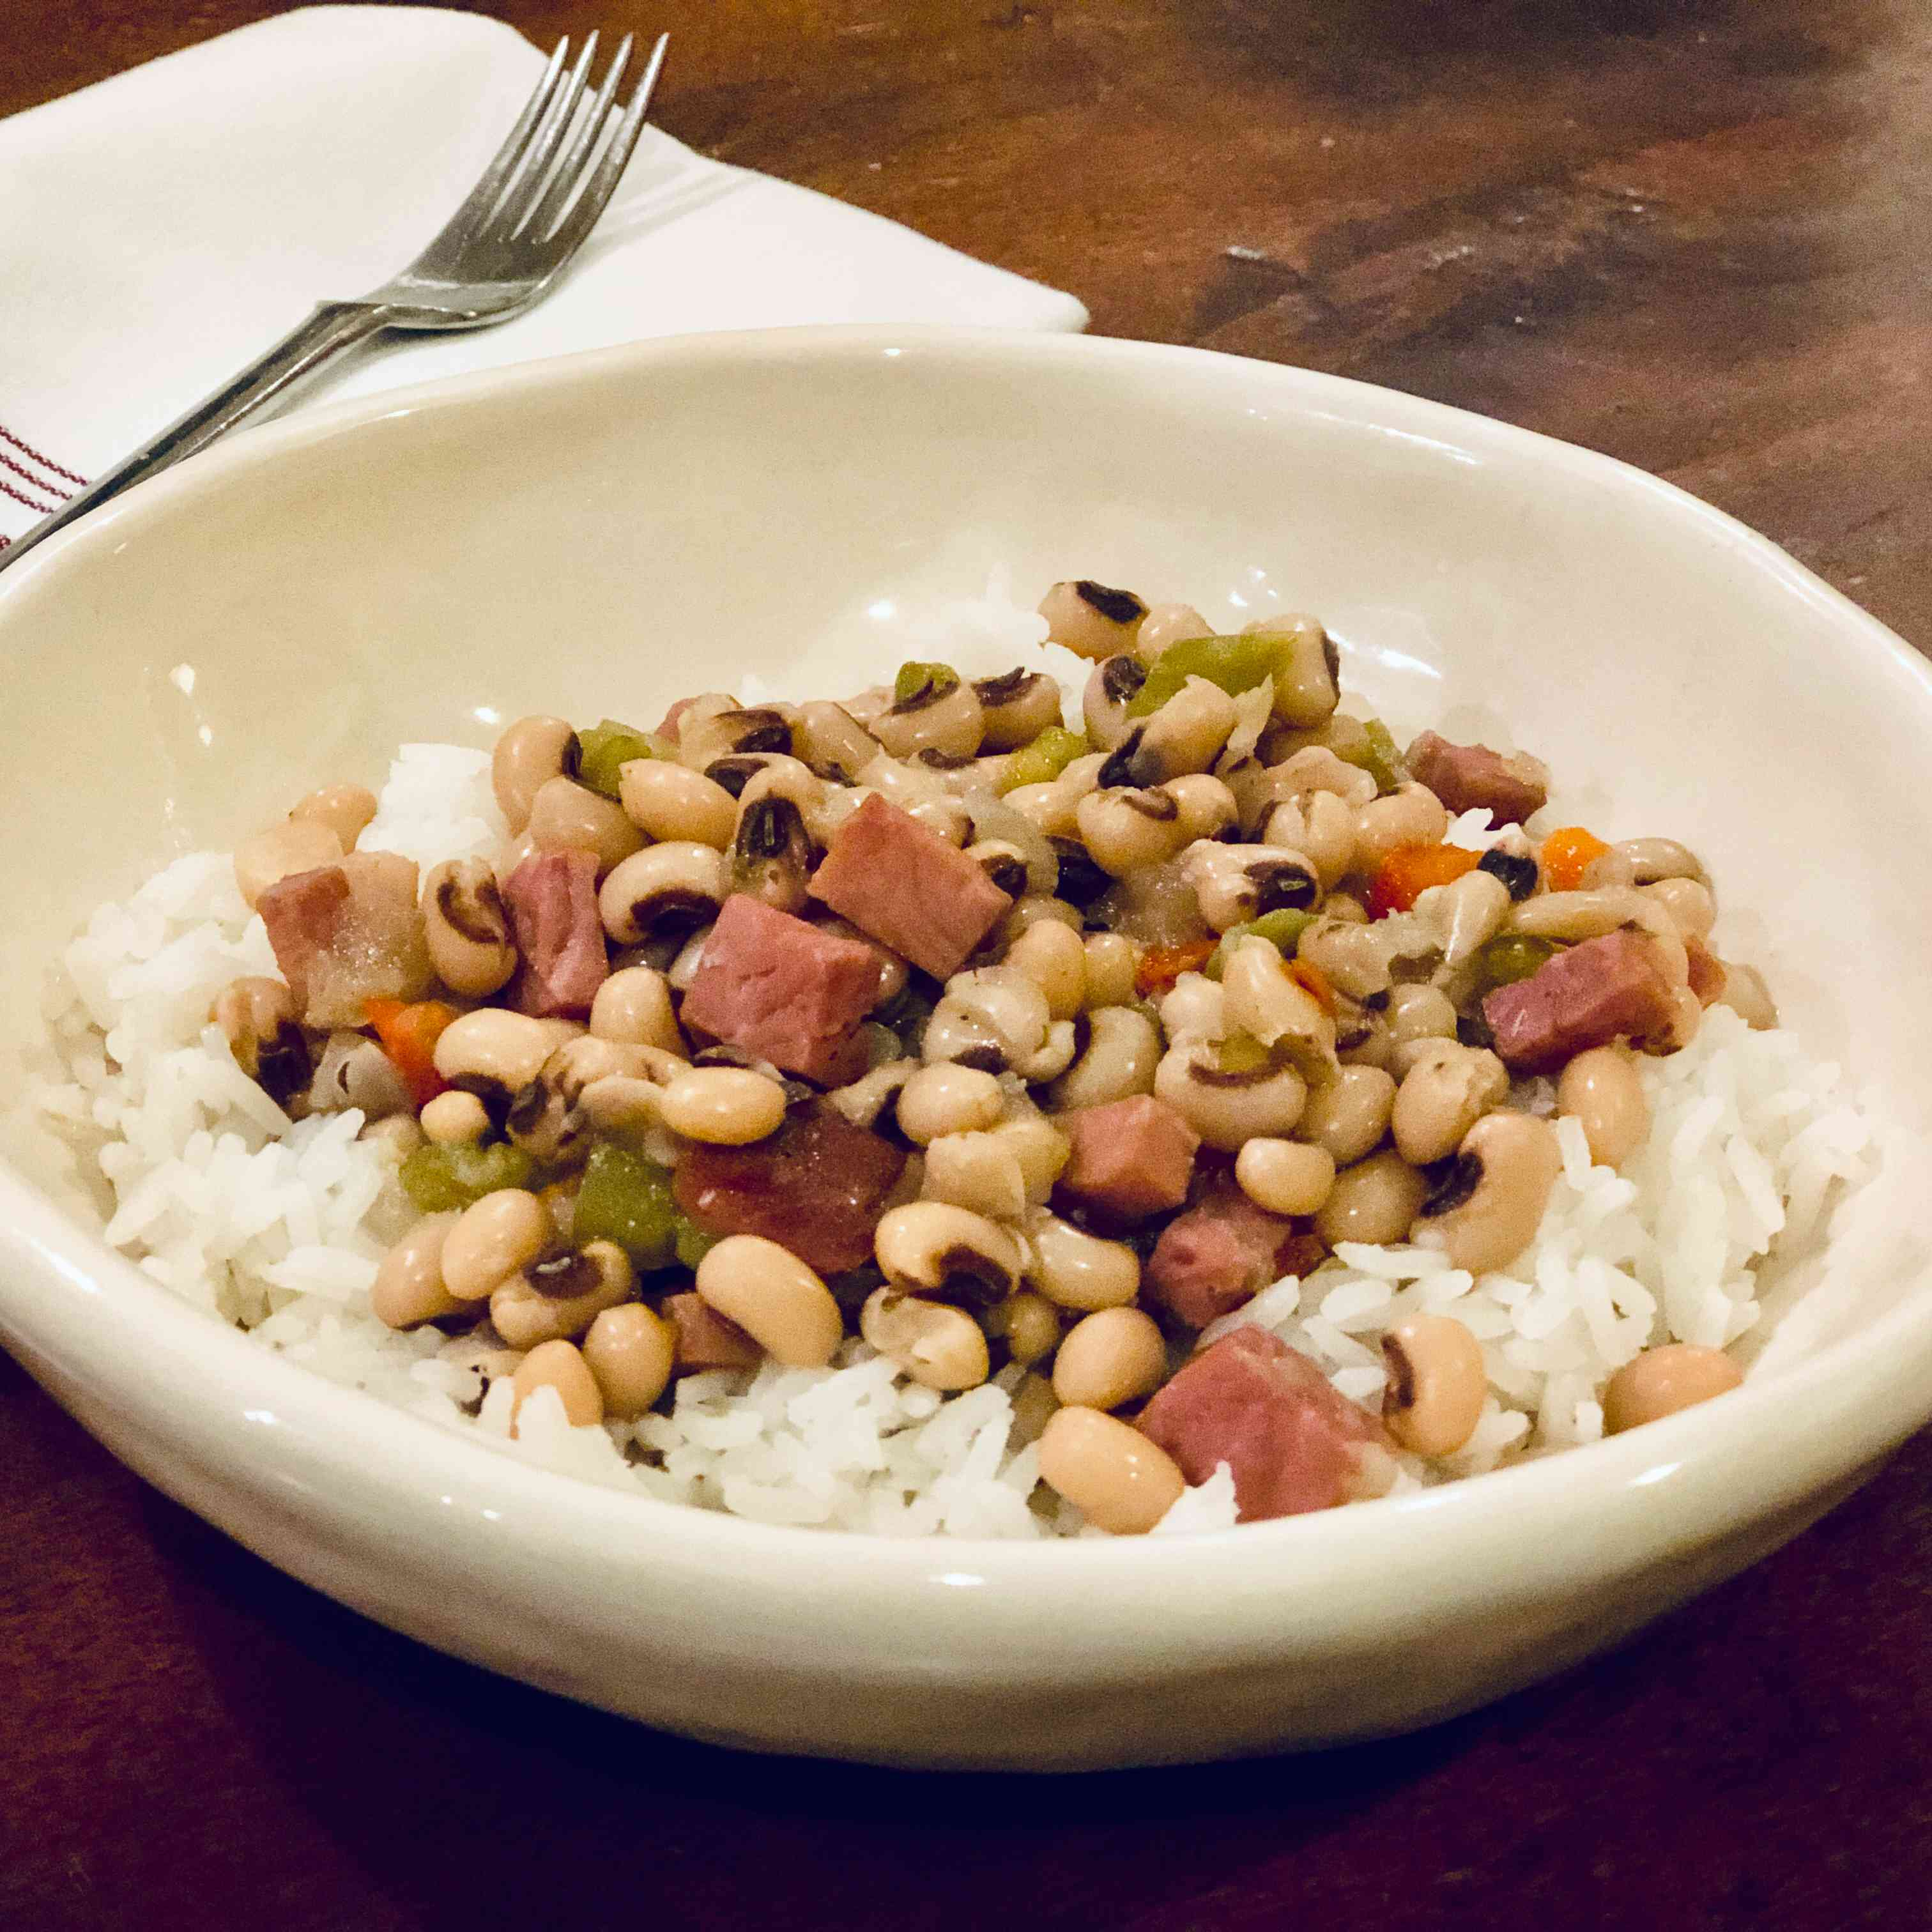 Spicy Southern Black-Eyed Peas Tester Image